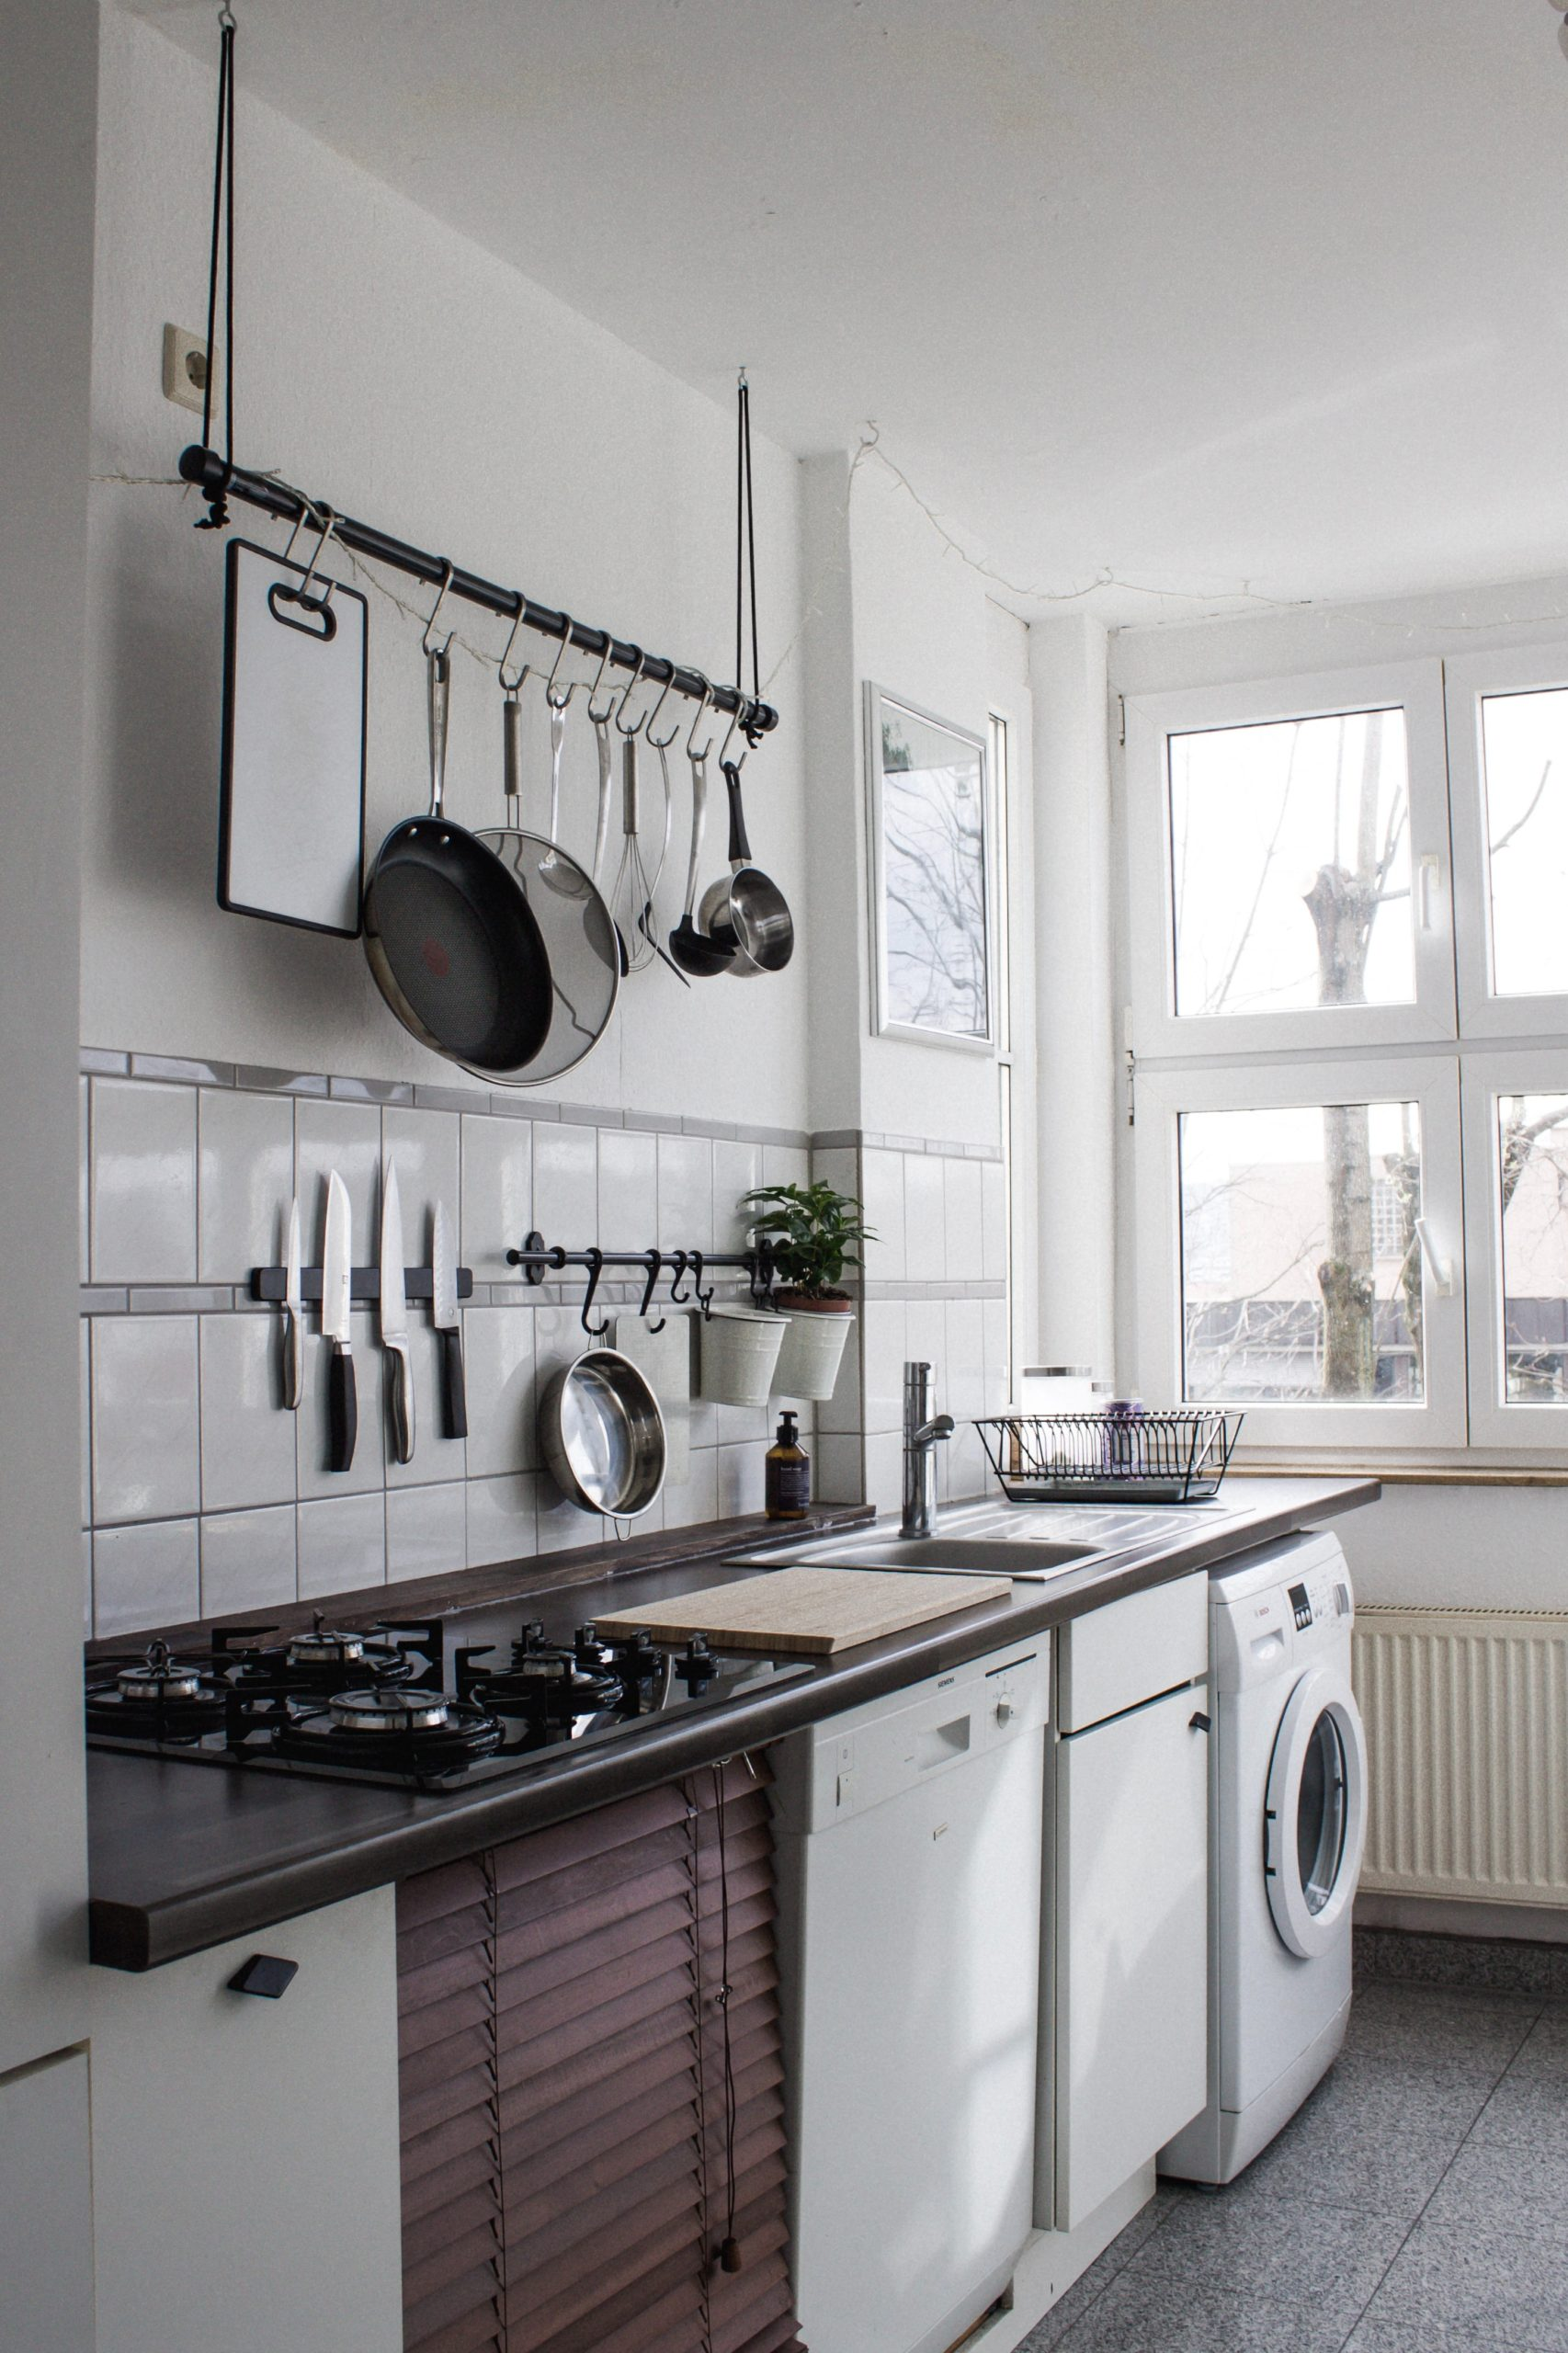 Kitchen with organized hanging pots and pans